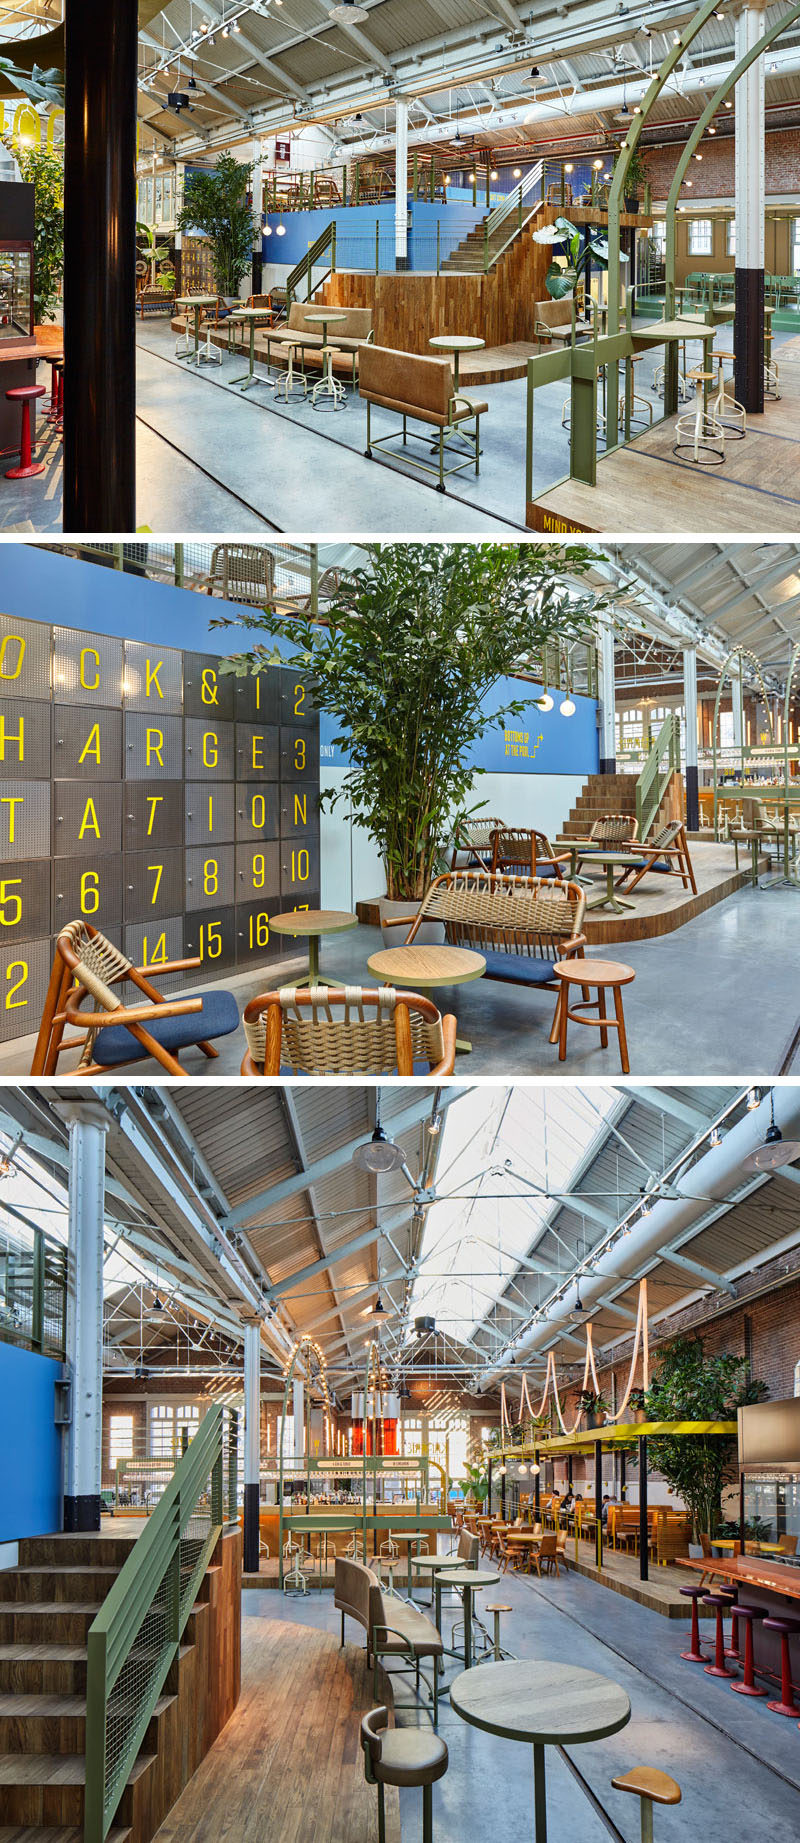 This restaurant and bar in Amsterdam can be found in a renovated tram depot.